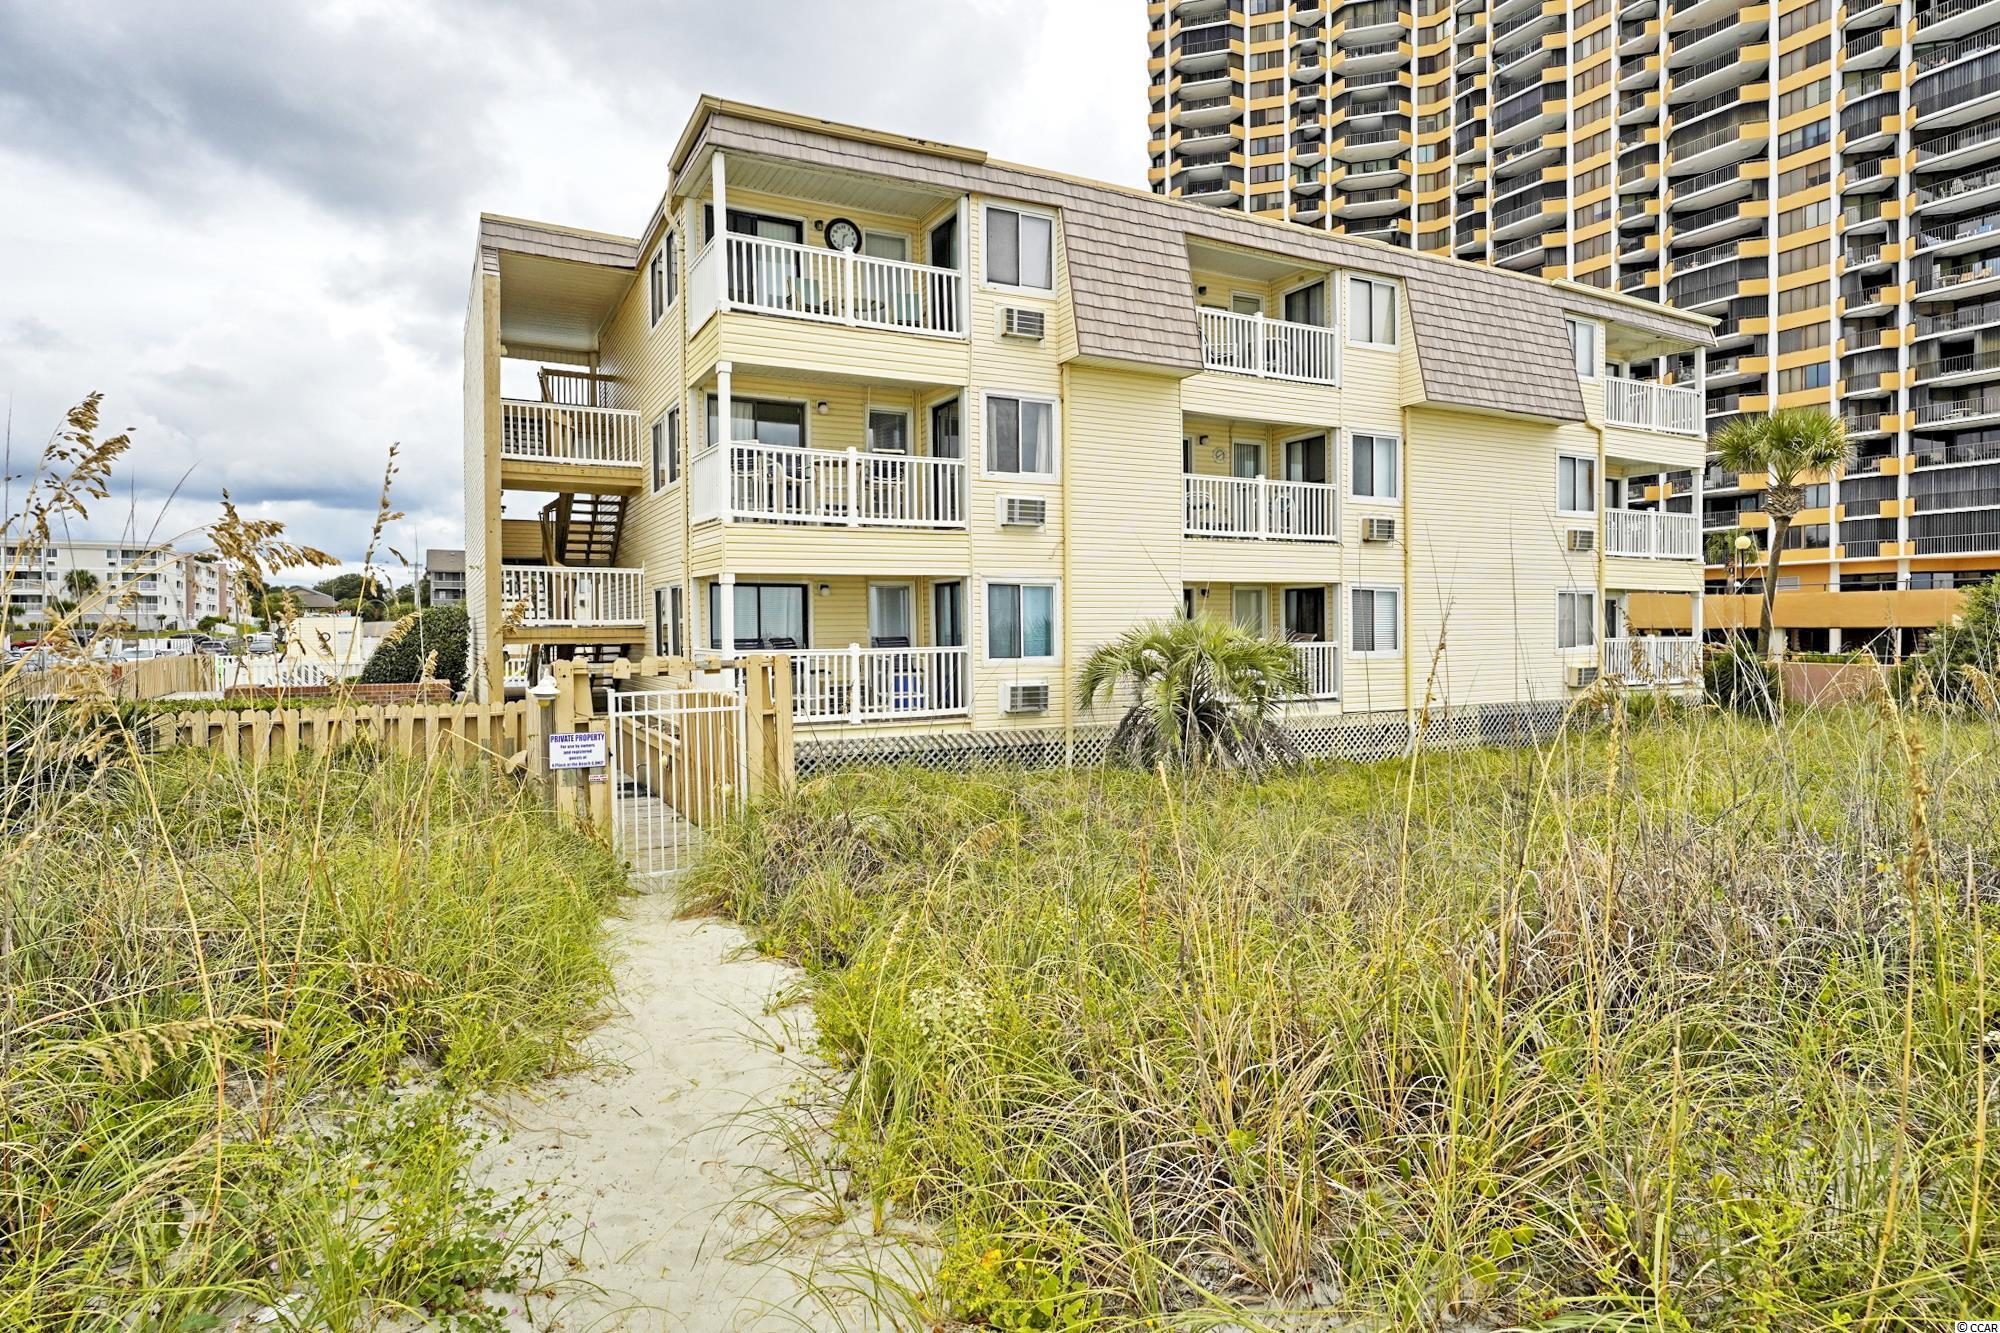 A Place At The Beach Vi- Shore Drive Real Estate Listings Main Image